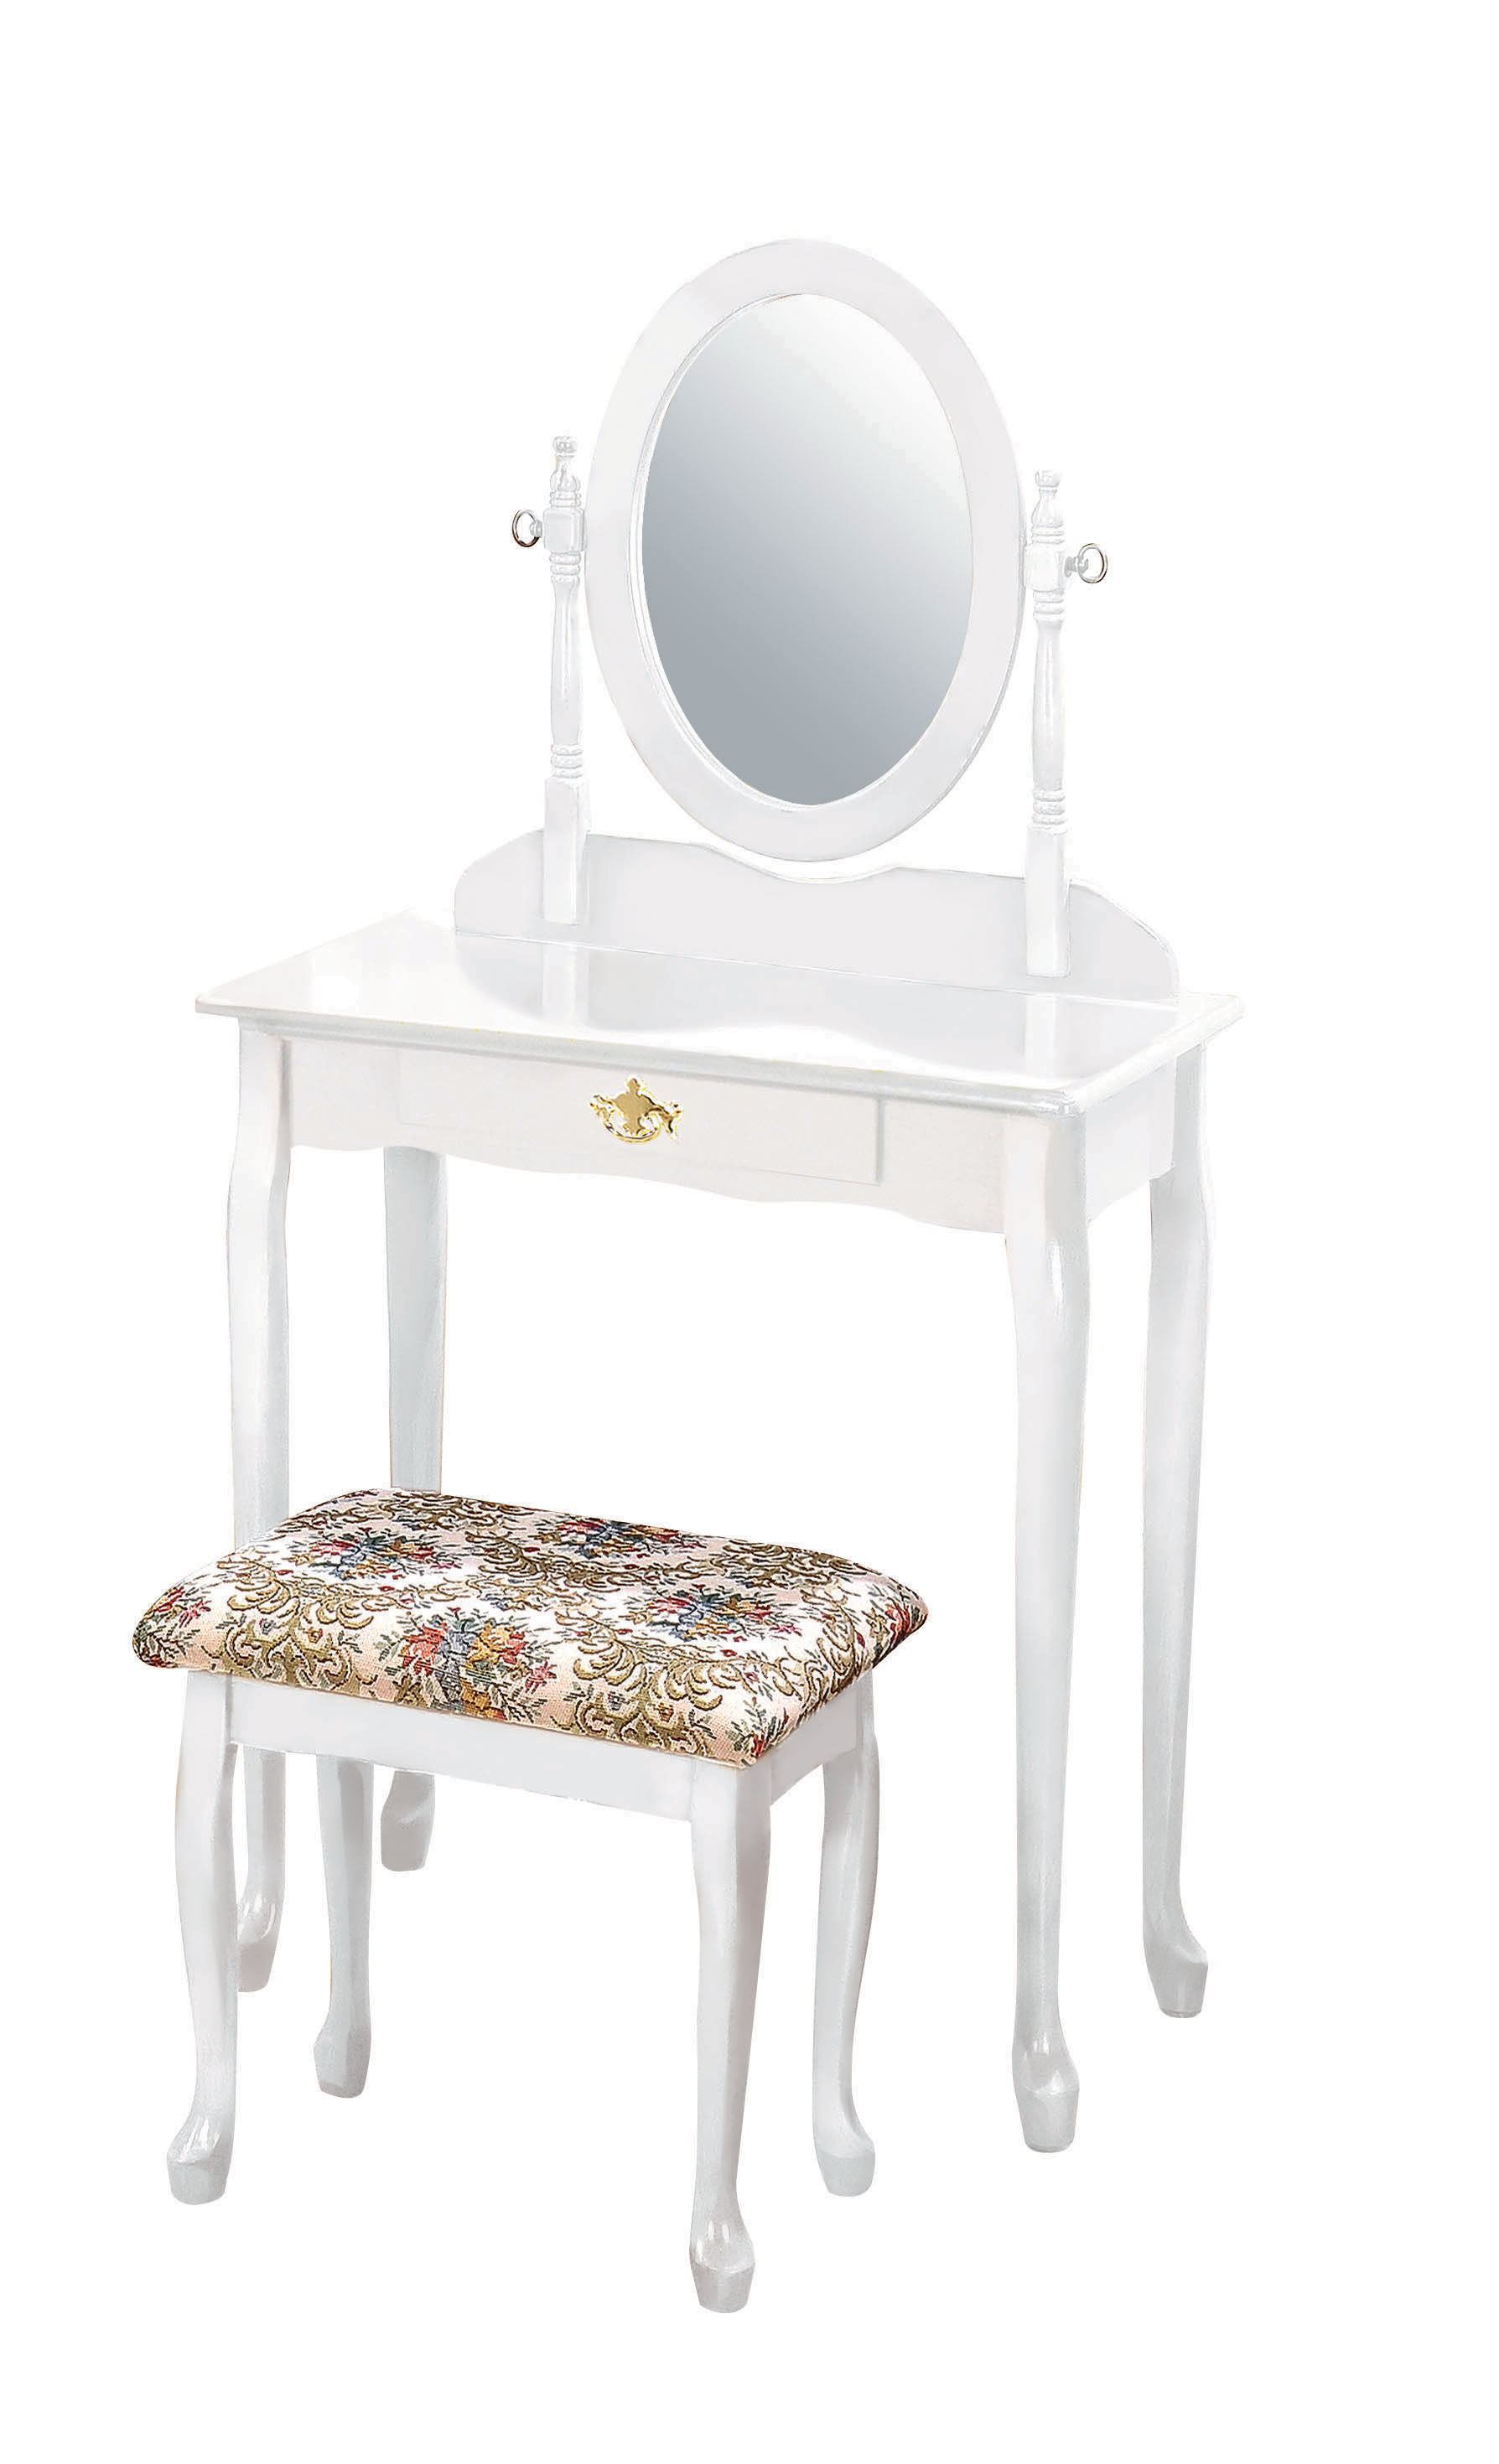 Acme Furniture Queen Anne White Vanity Set | The Classy Home